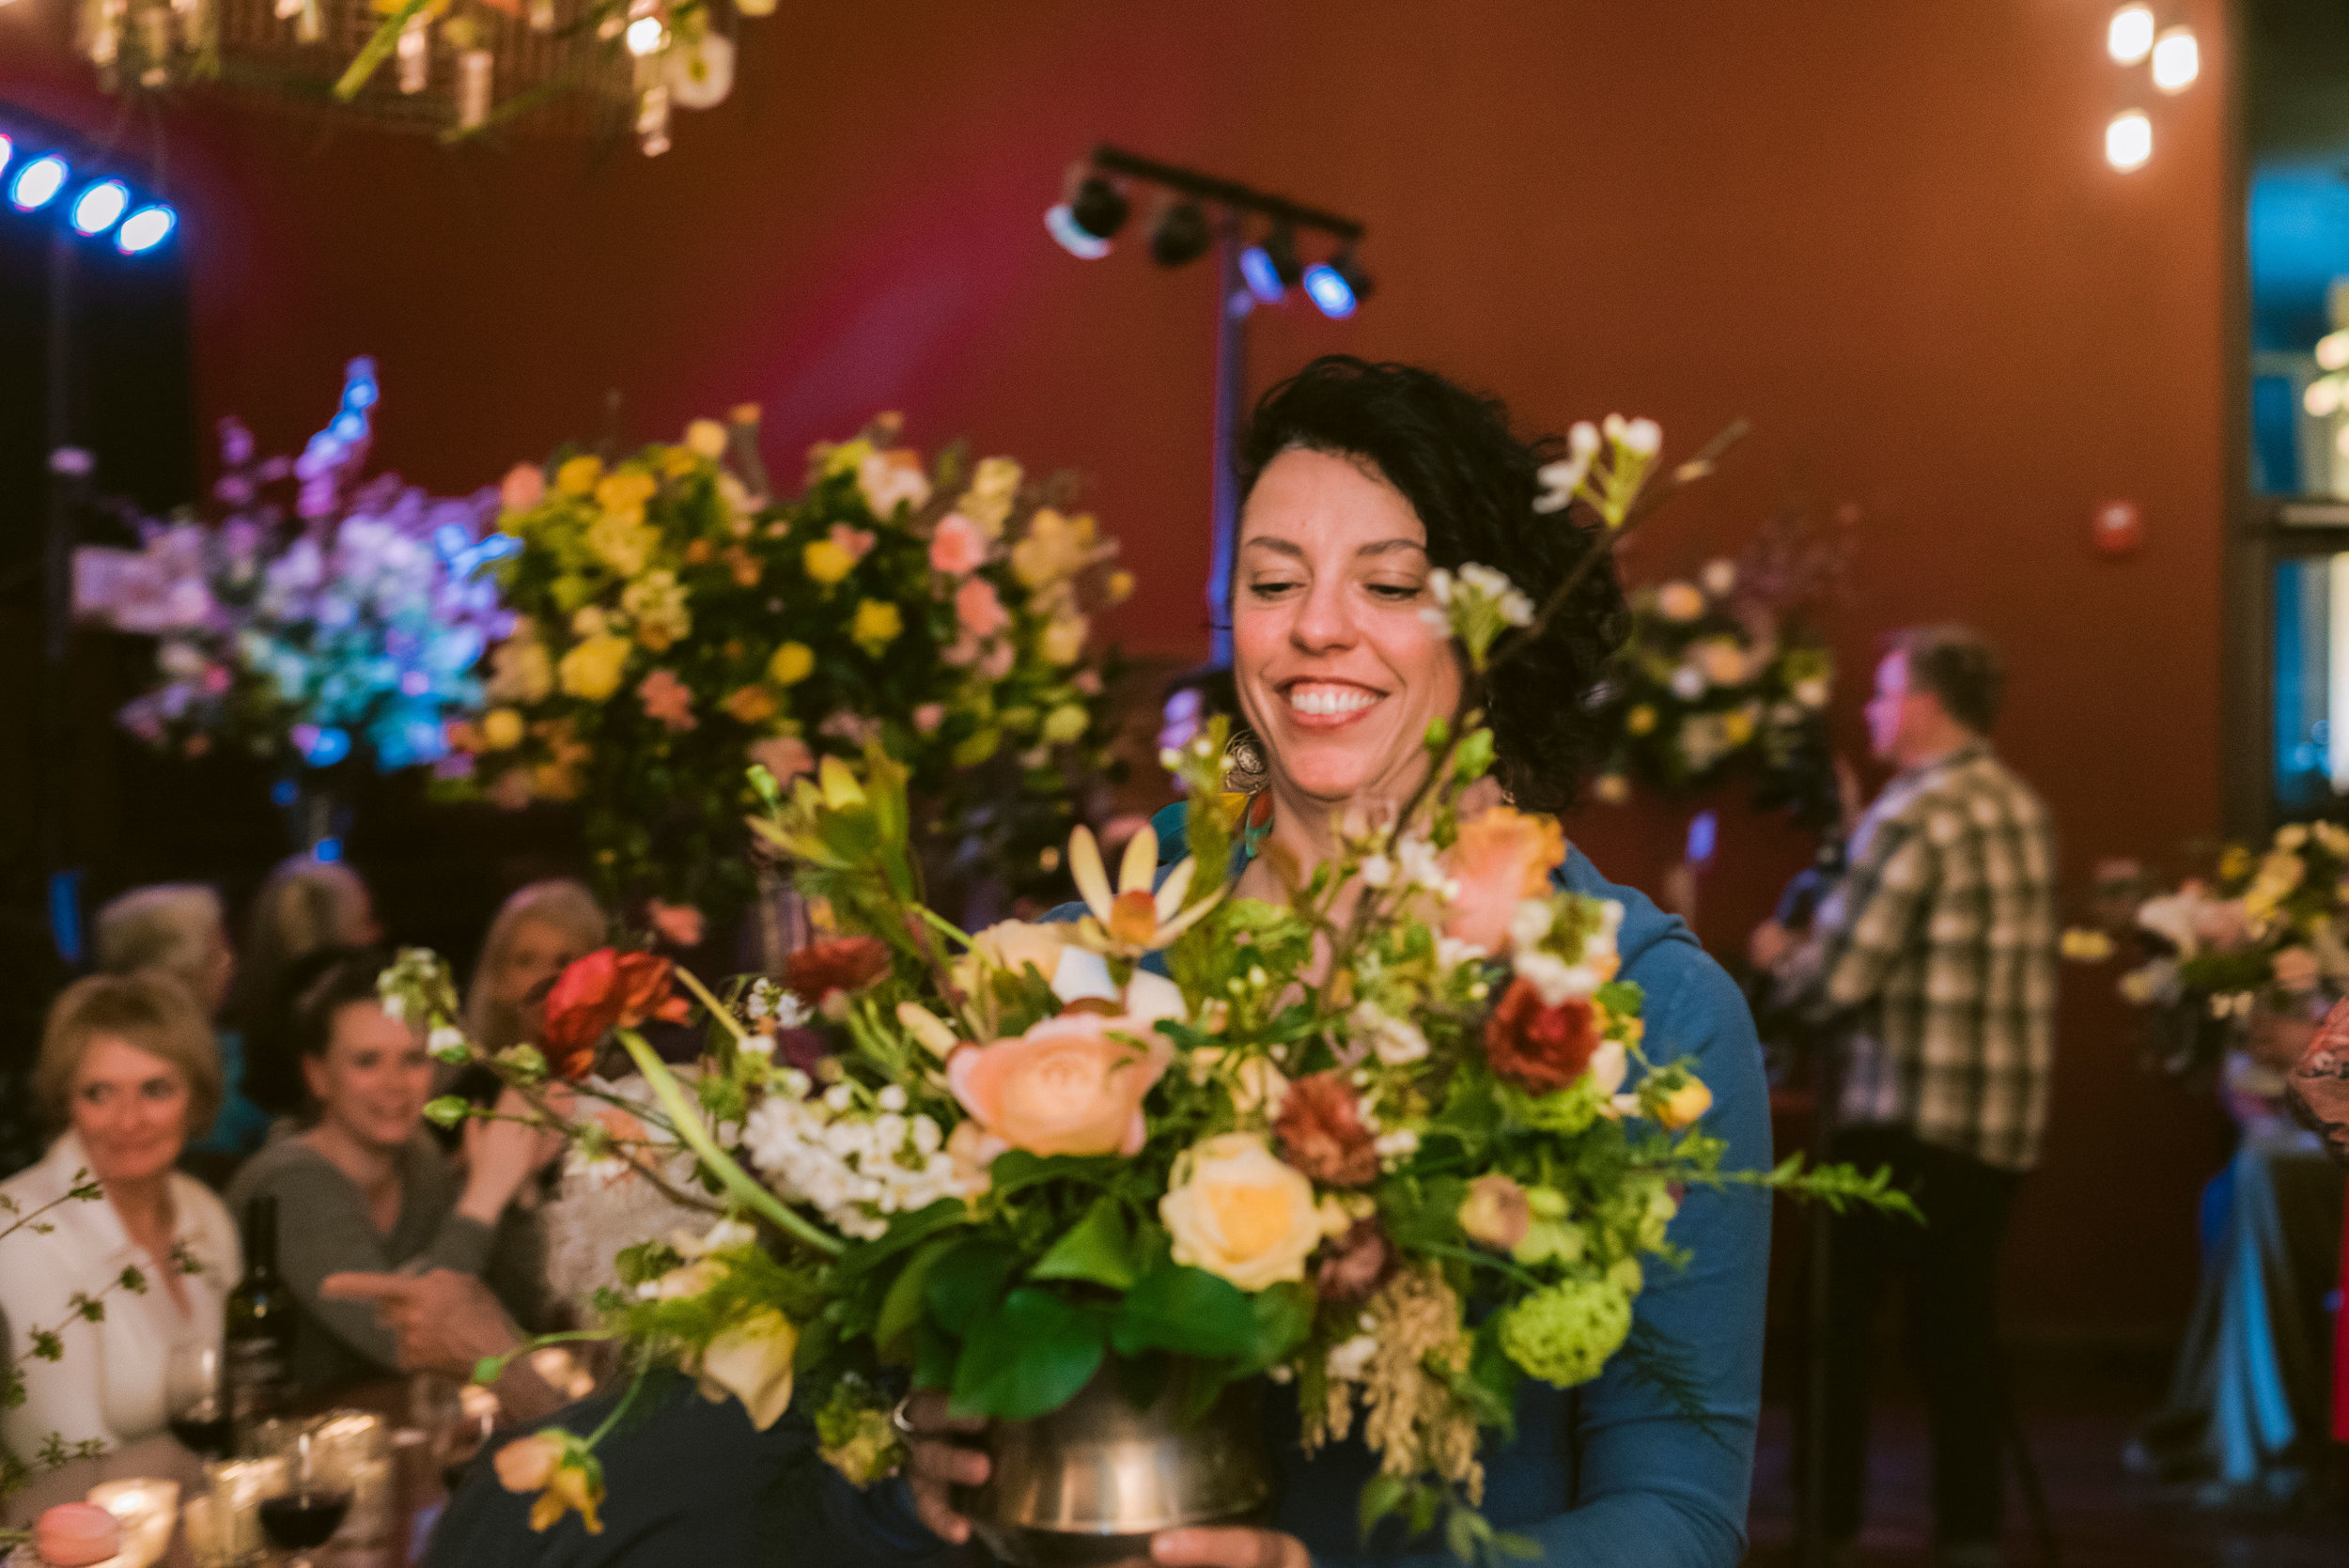 Photo Credit: Suzanne Rothmeyer Photography  Event: Tobey Nelson Events- Whidbey Flower Workshop - Sustainable Floristry